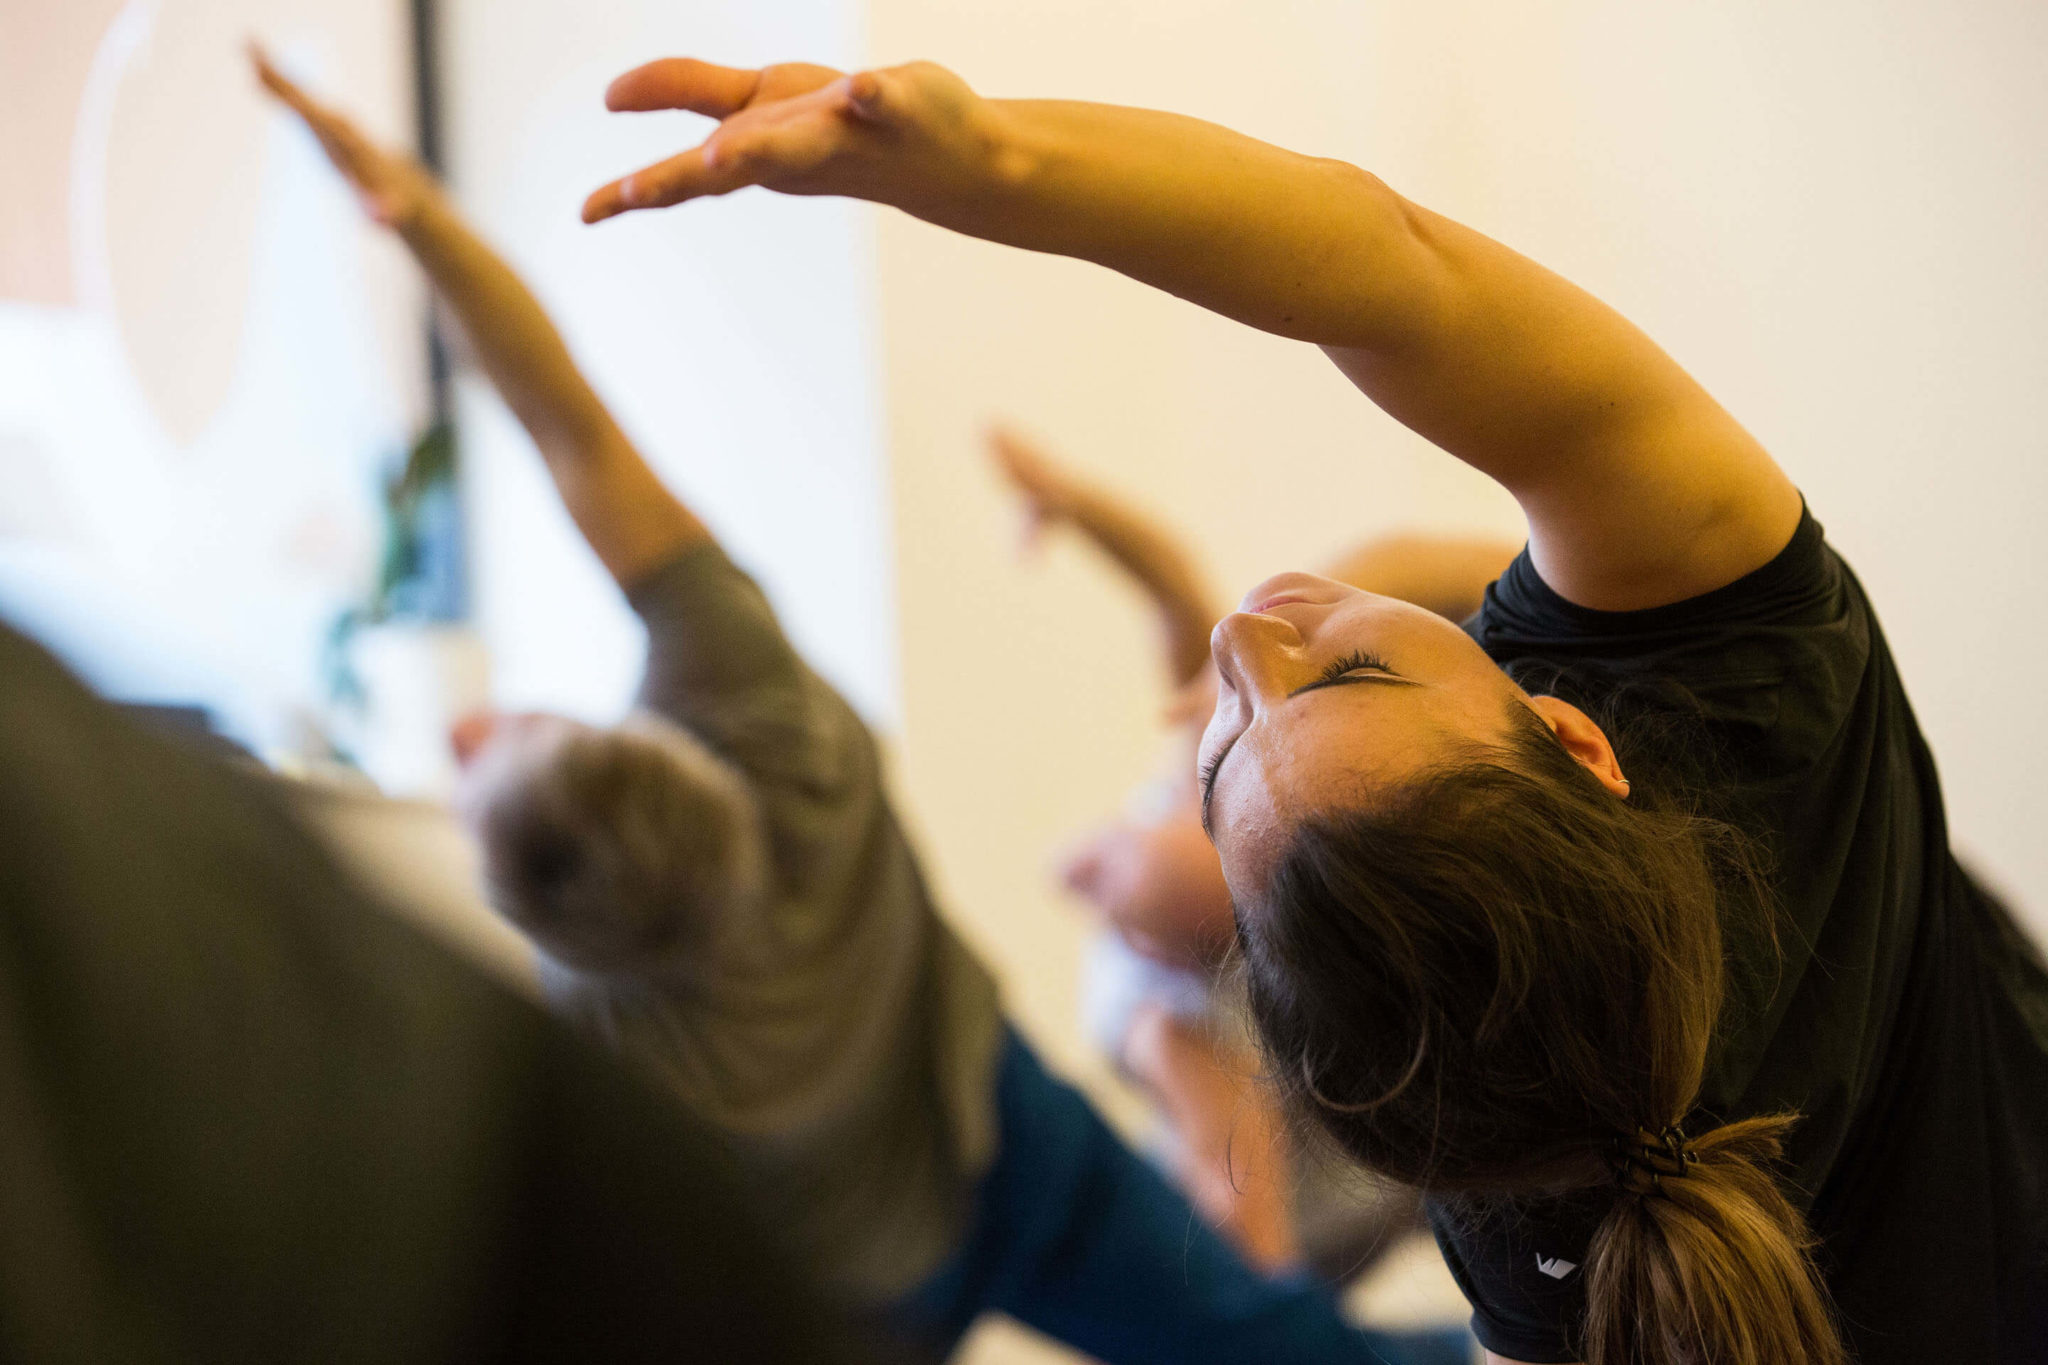 What does Lisa think of her Yoga & Hot Yoga Teacher Training course with Yogafurie?